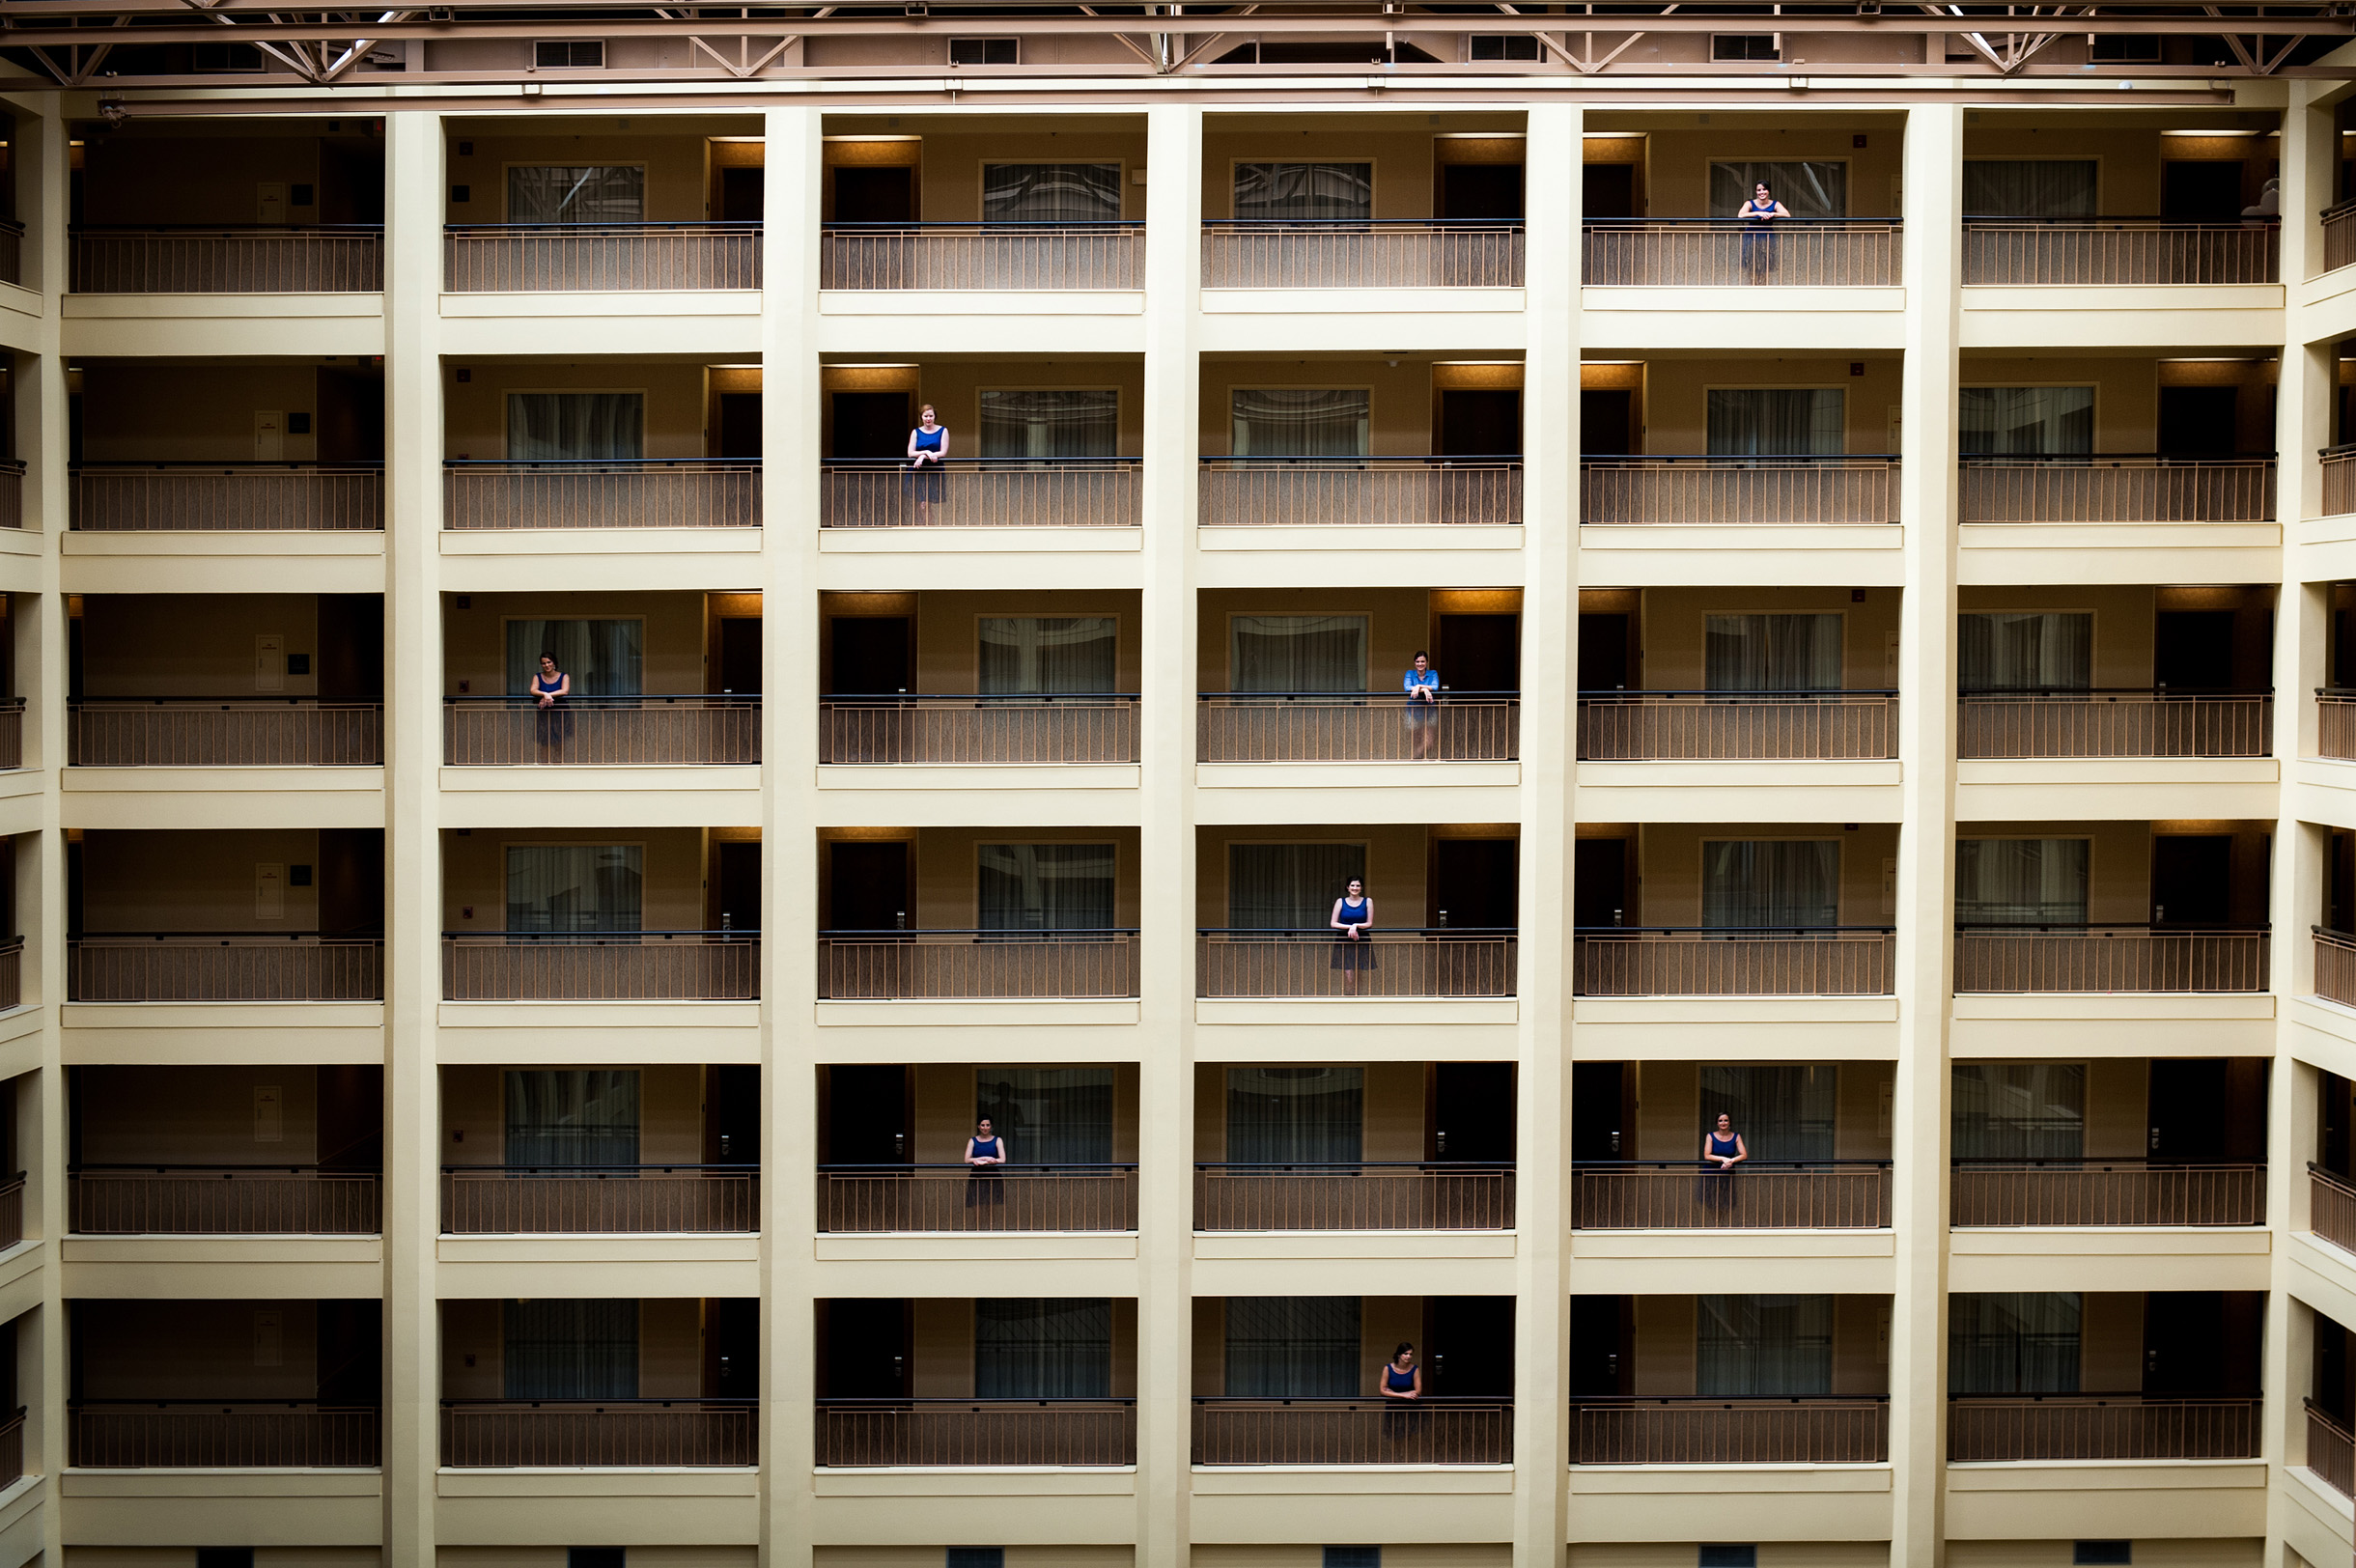 bridemaids on different floors of hotel